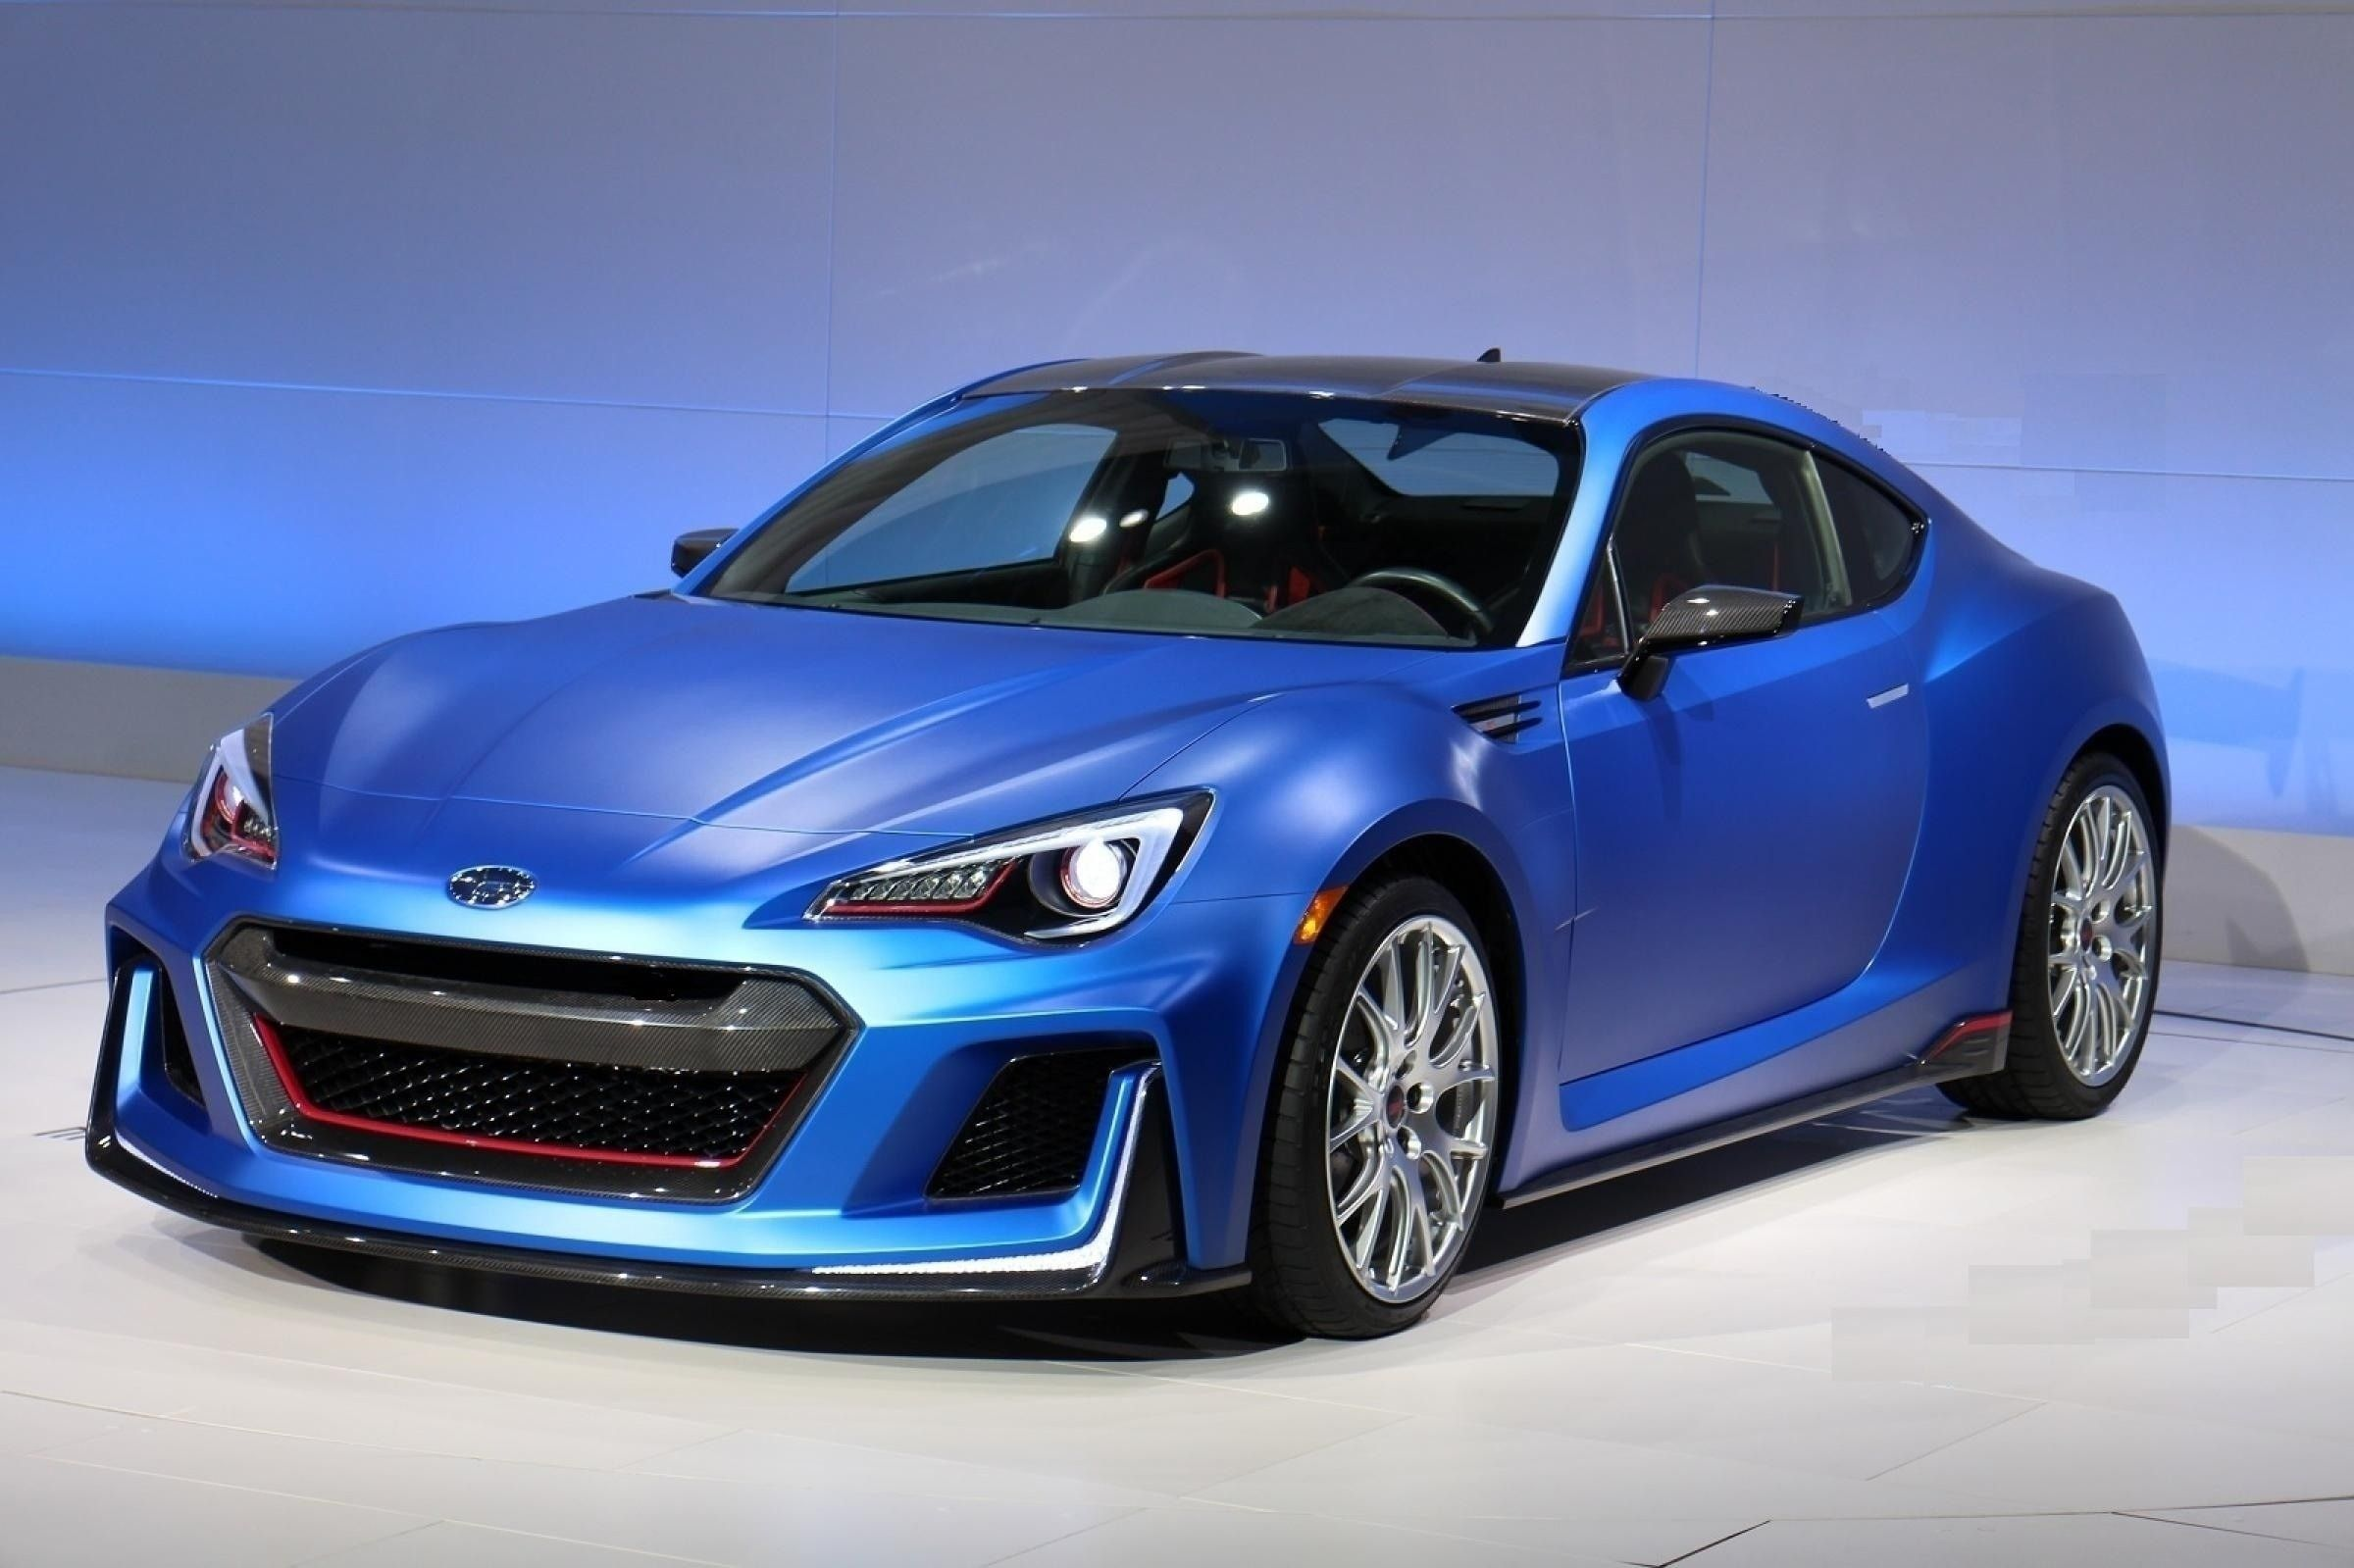 2019 Subaru Brz Roadster Review Specs And Release Date Subaru Brz Subaru Brz Sti Subaru